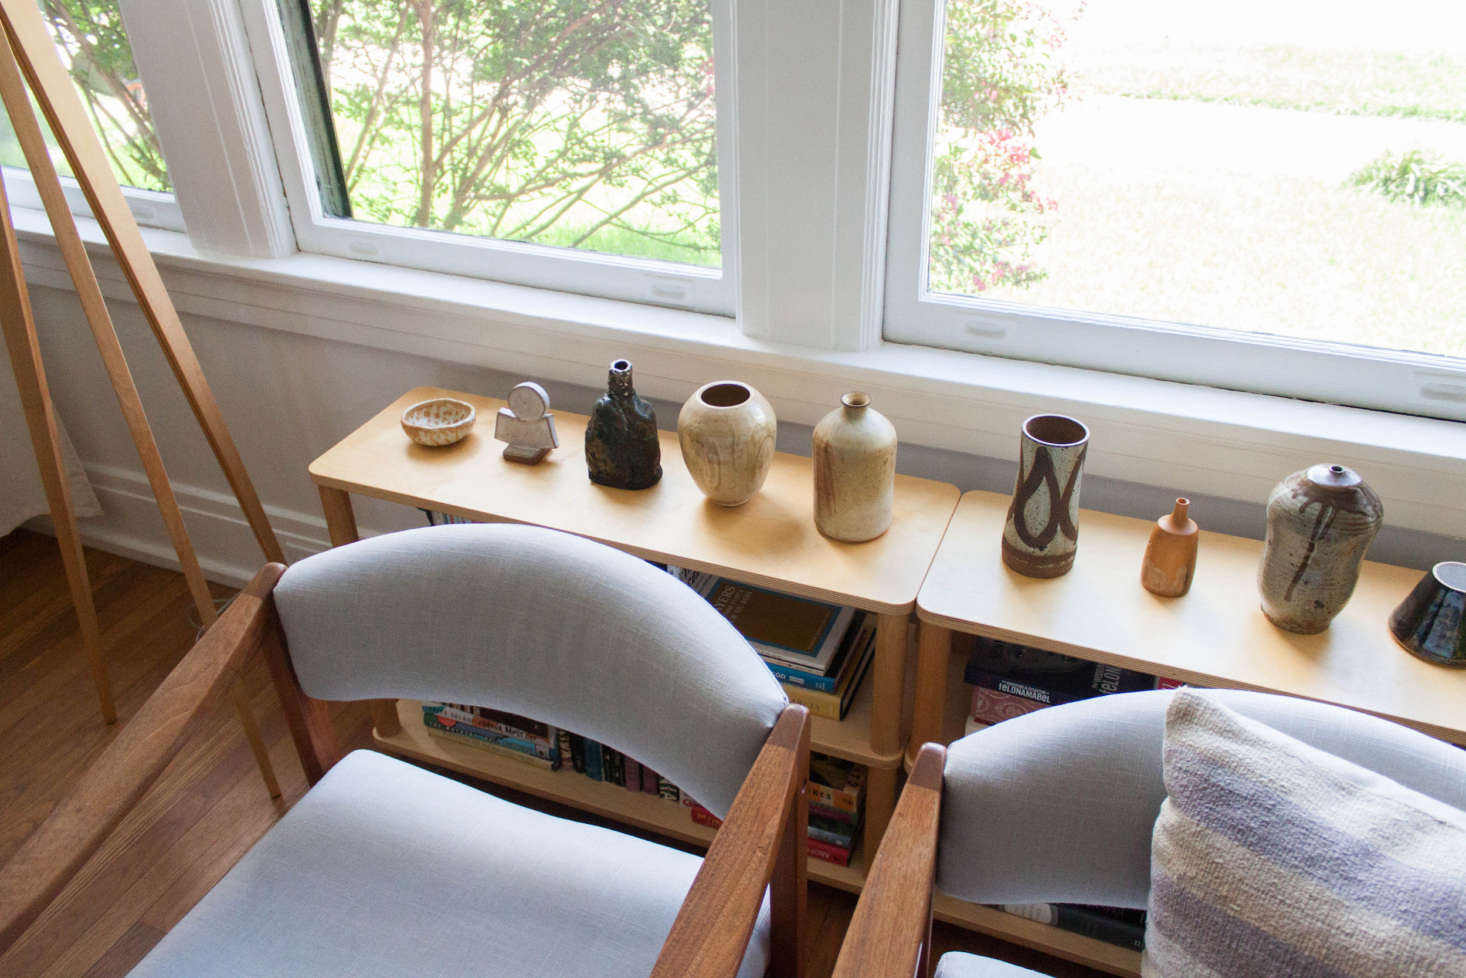 Gabi had the vintage armchairs reupholstered. She collects pottery—both secondhand and new from local potters—and displays them throughout her home.